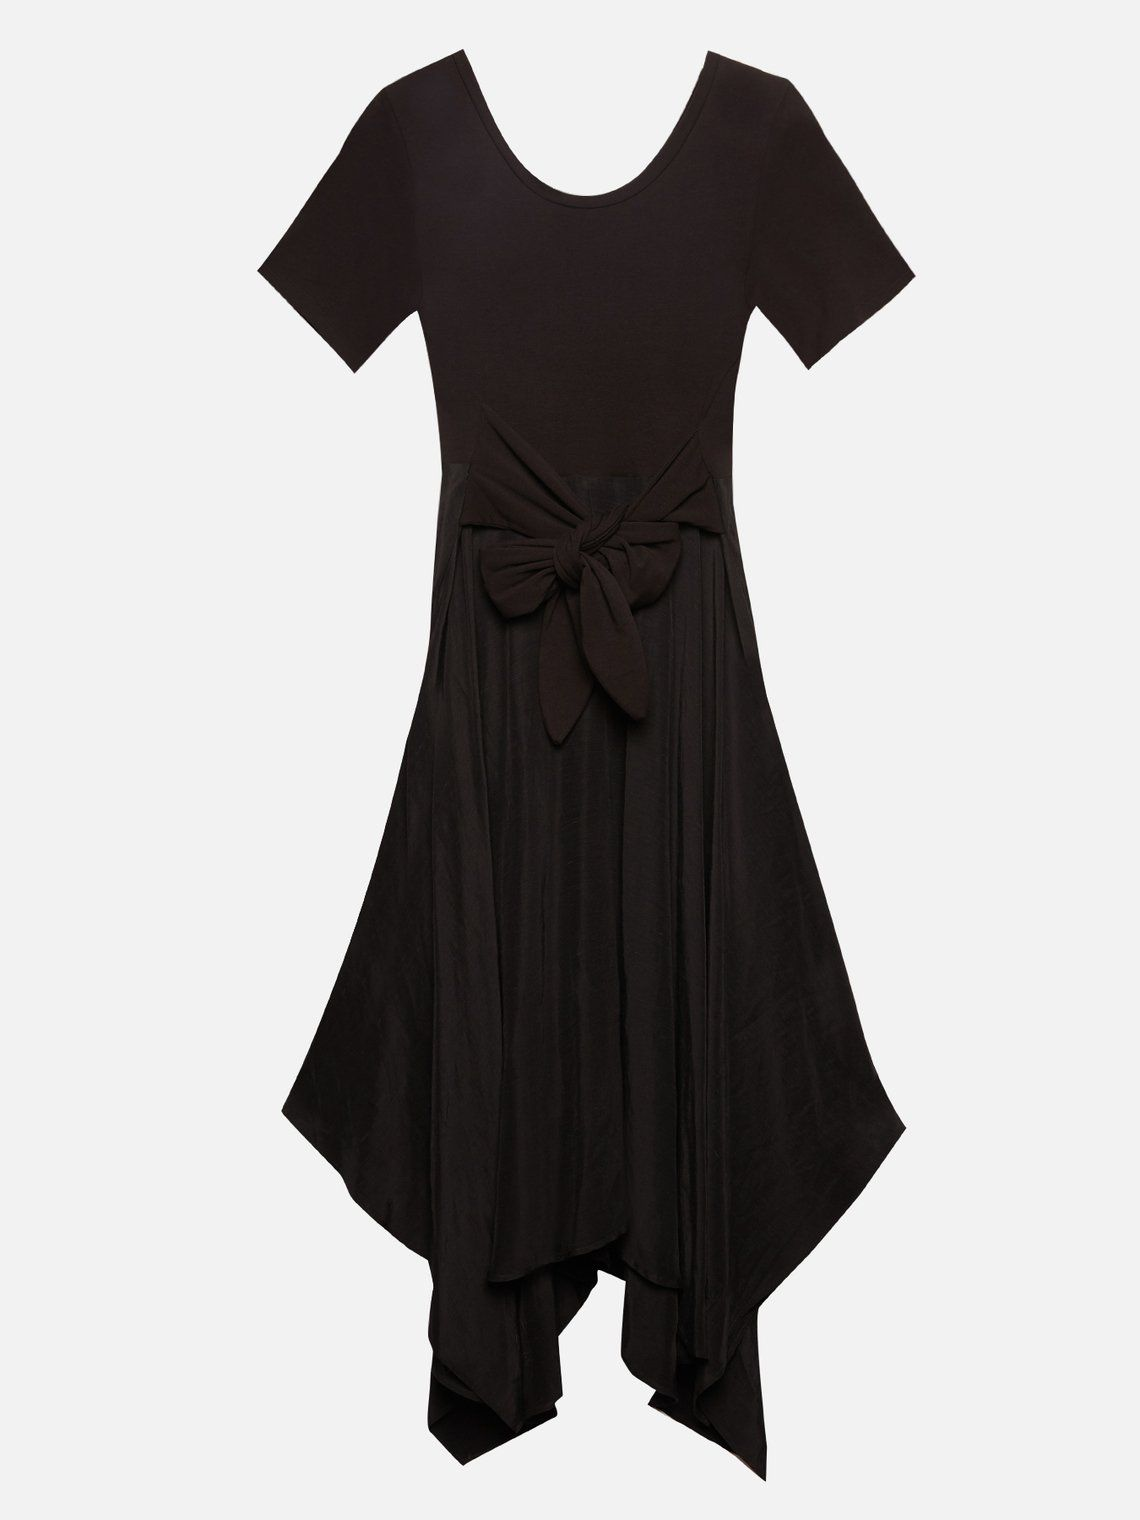 Caractere Dress in Black 7333AO 01A1 10